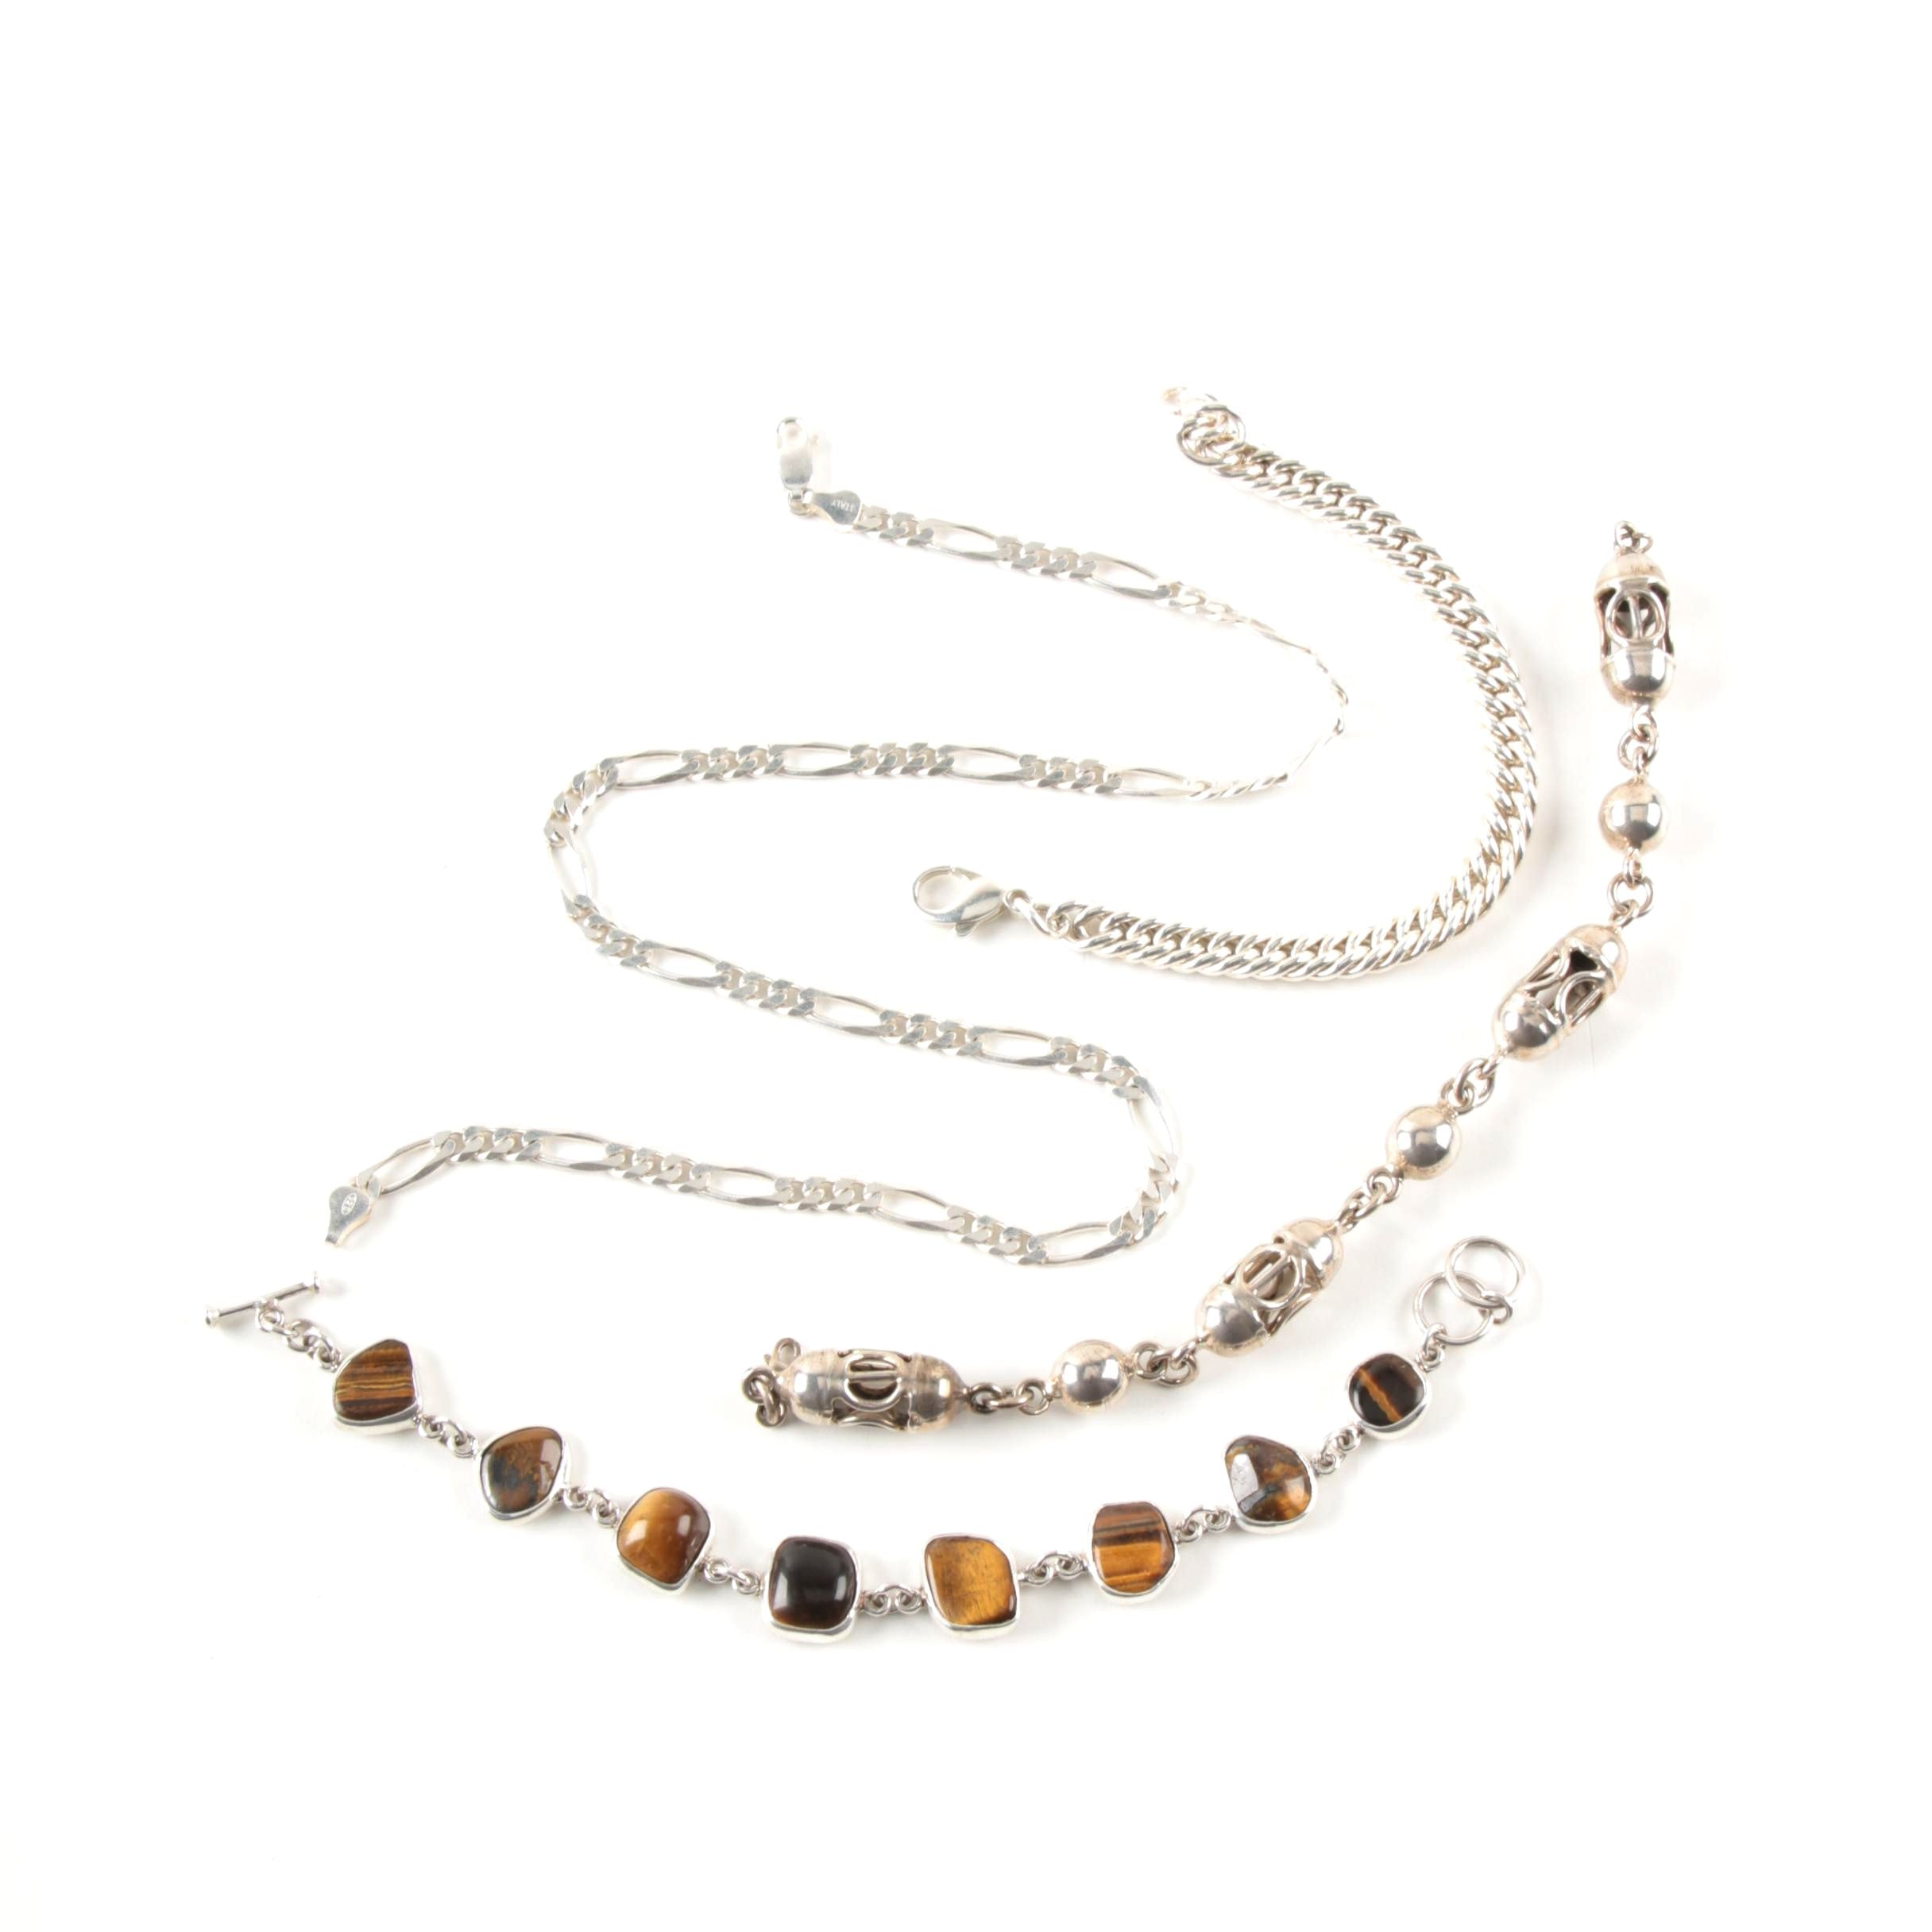 Selection of Sterling Silver Tiger's Eye Link Bracelets and Necklace